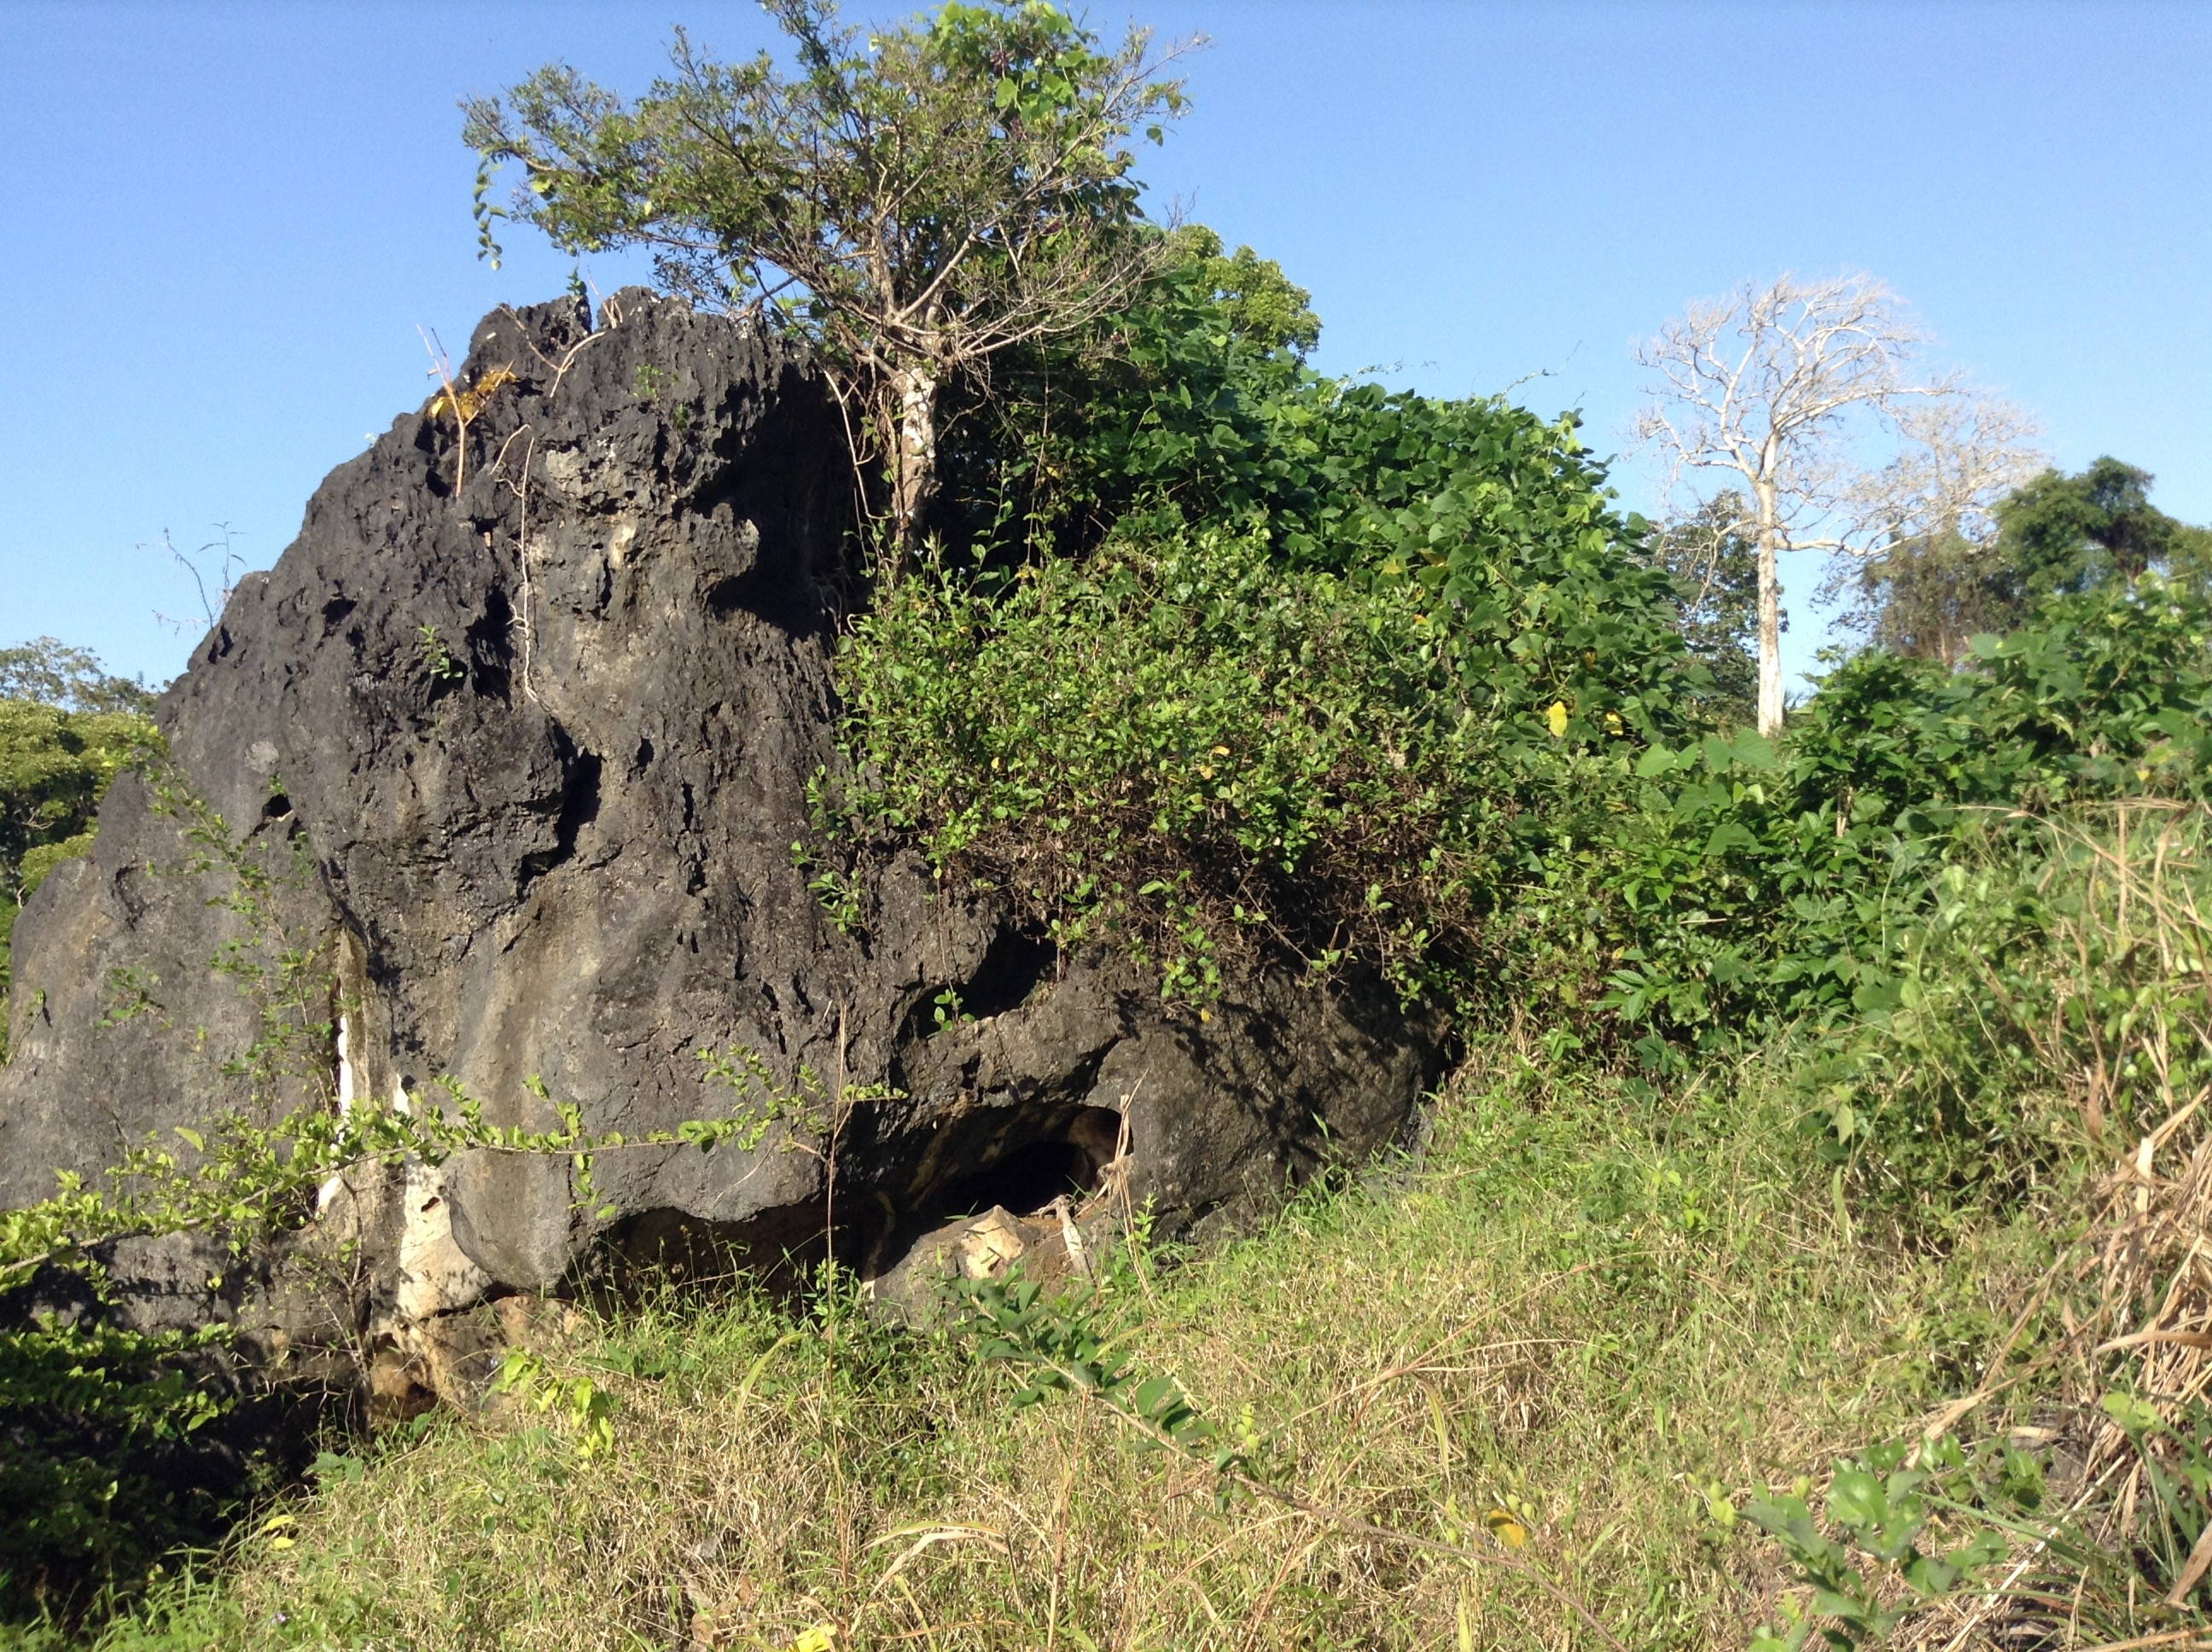 Wasini limestone rocks in Kambe, photo by author.